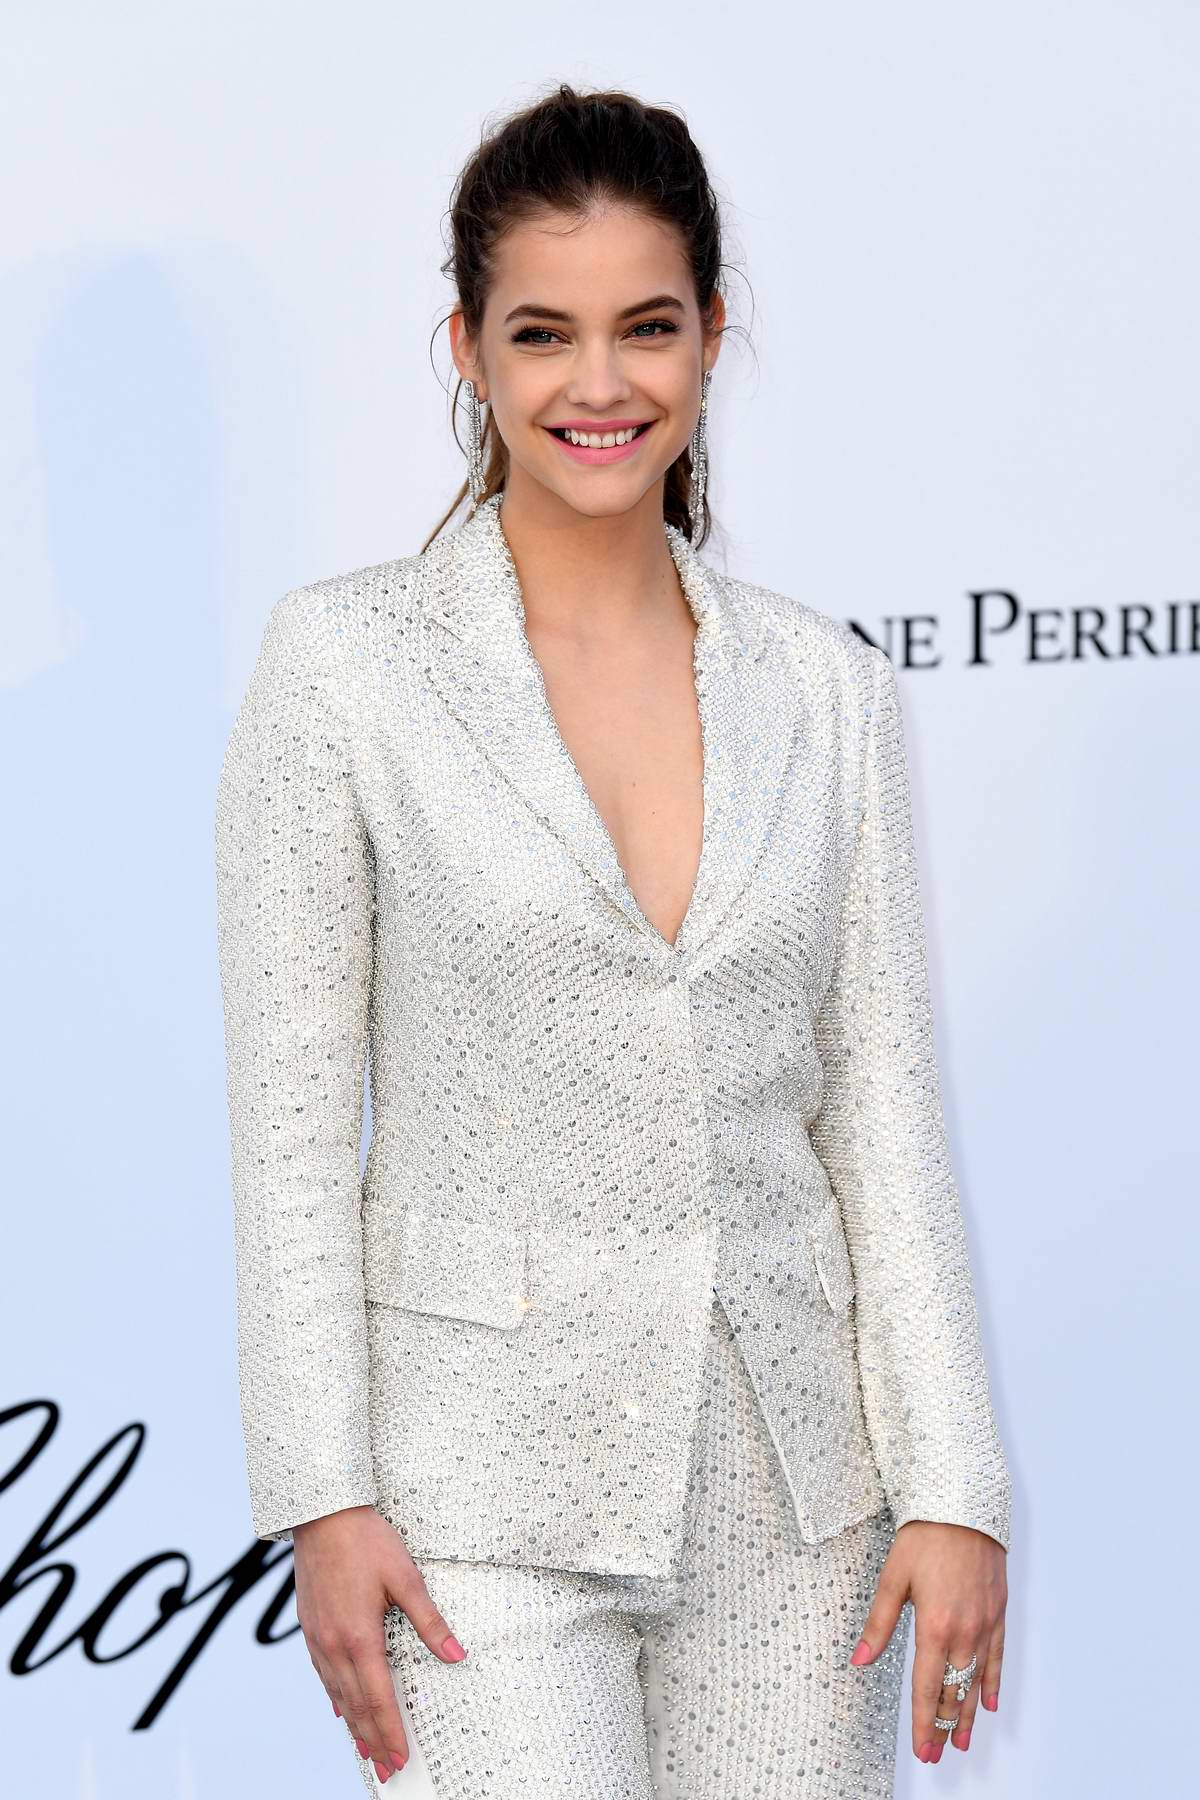 Barbara Palvin at the amfAR's 25th Cinema Against AIDS Gala during 71st Cannes Film Festival, France